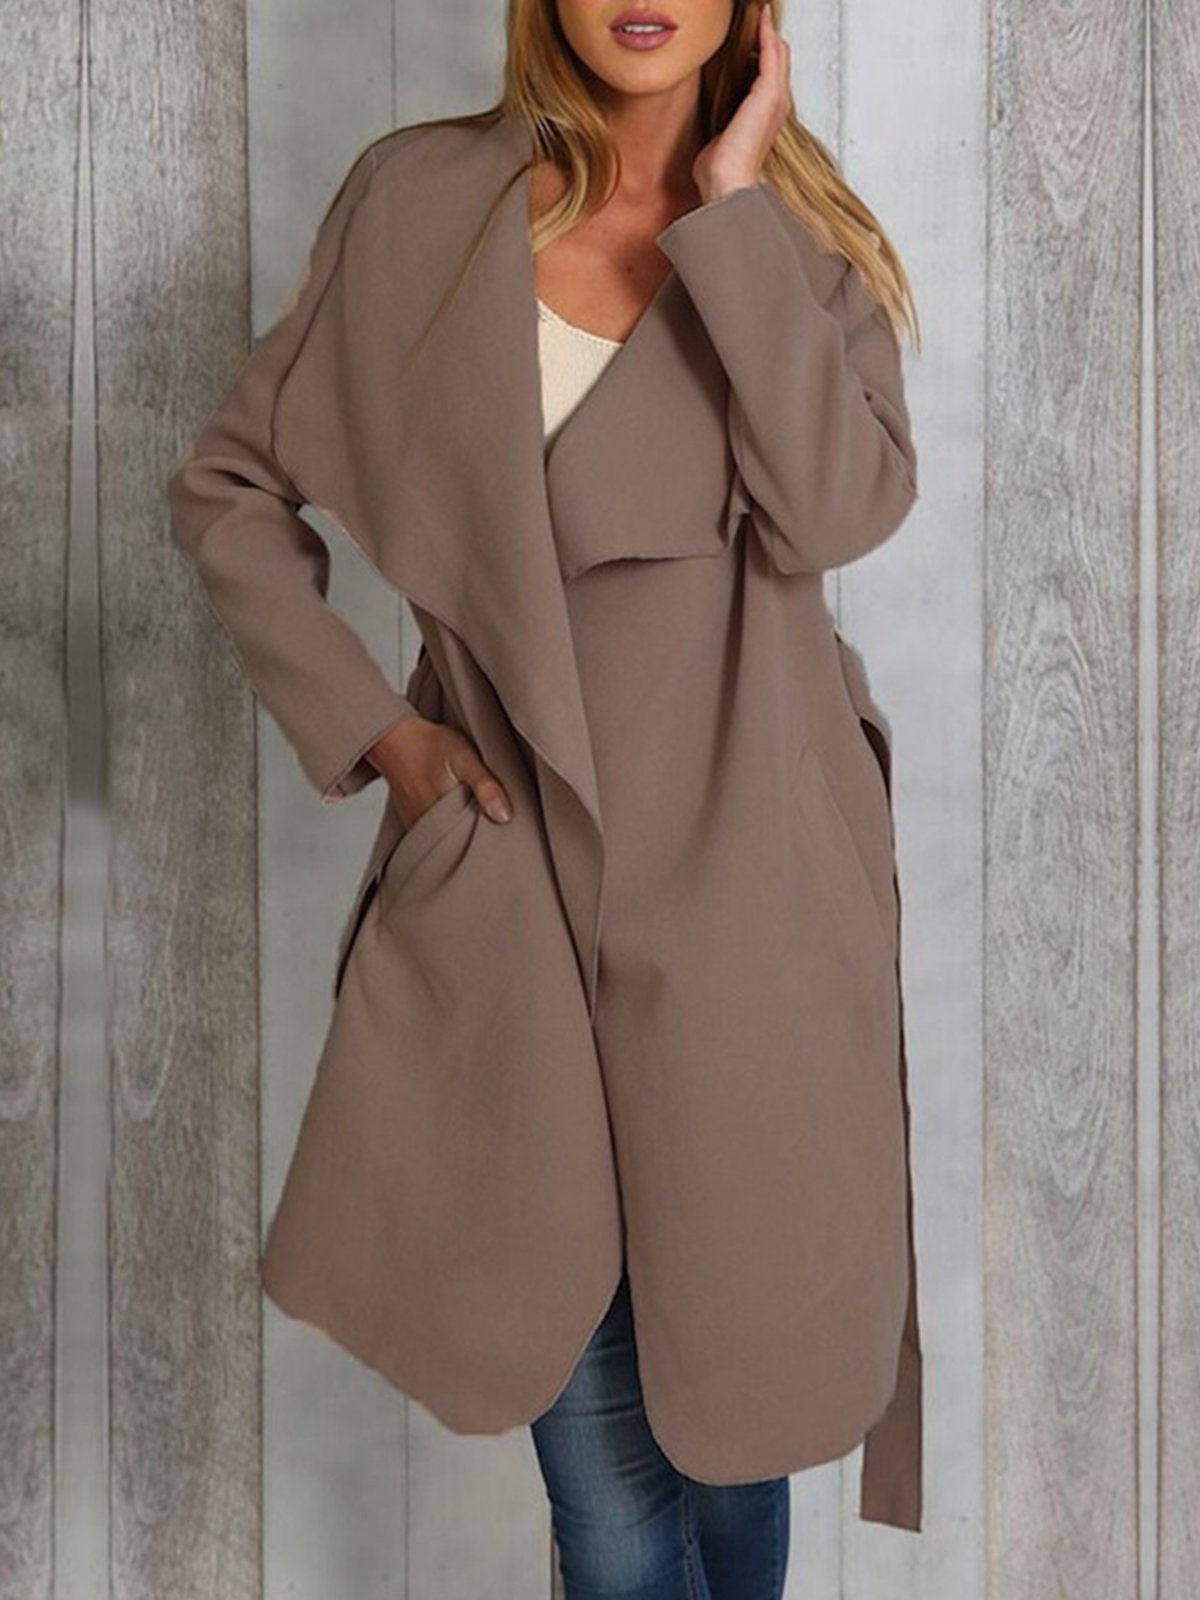 Lapel Solid Casual Coat